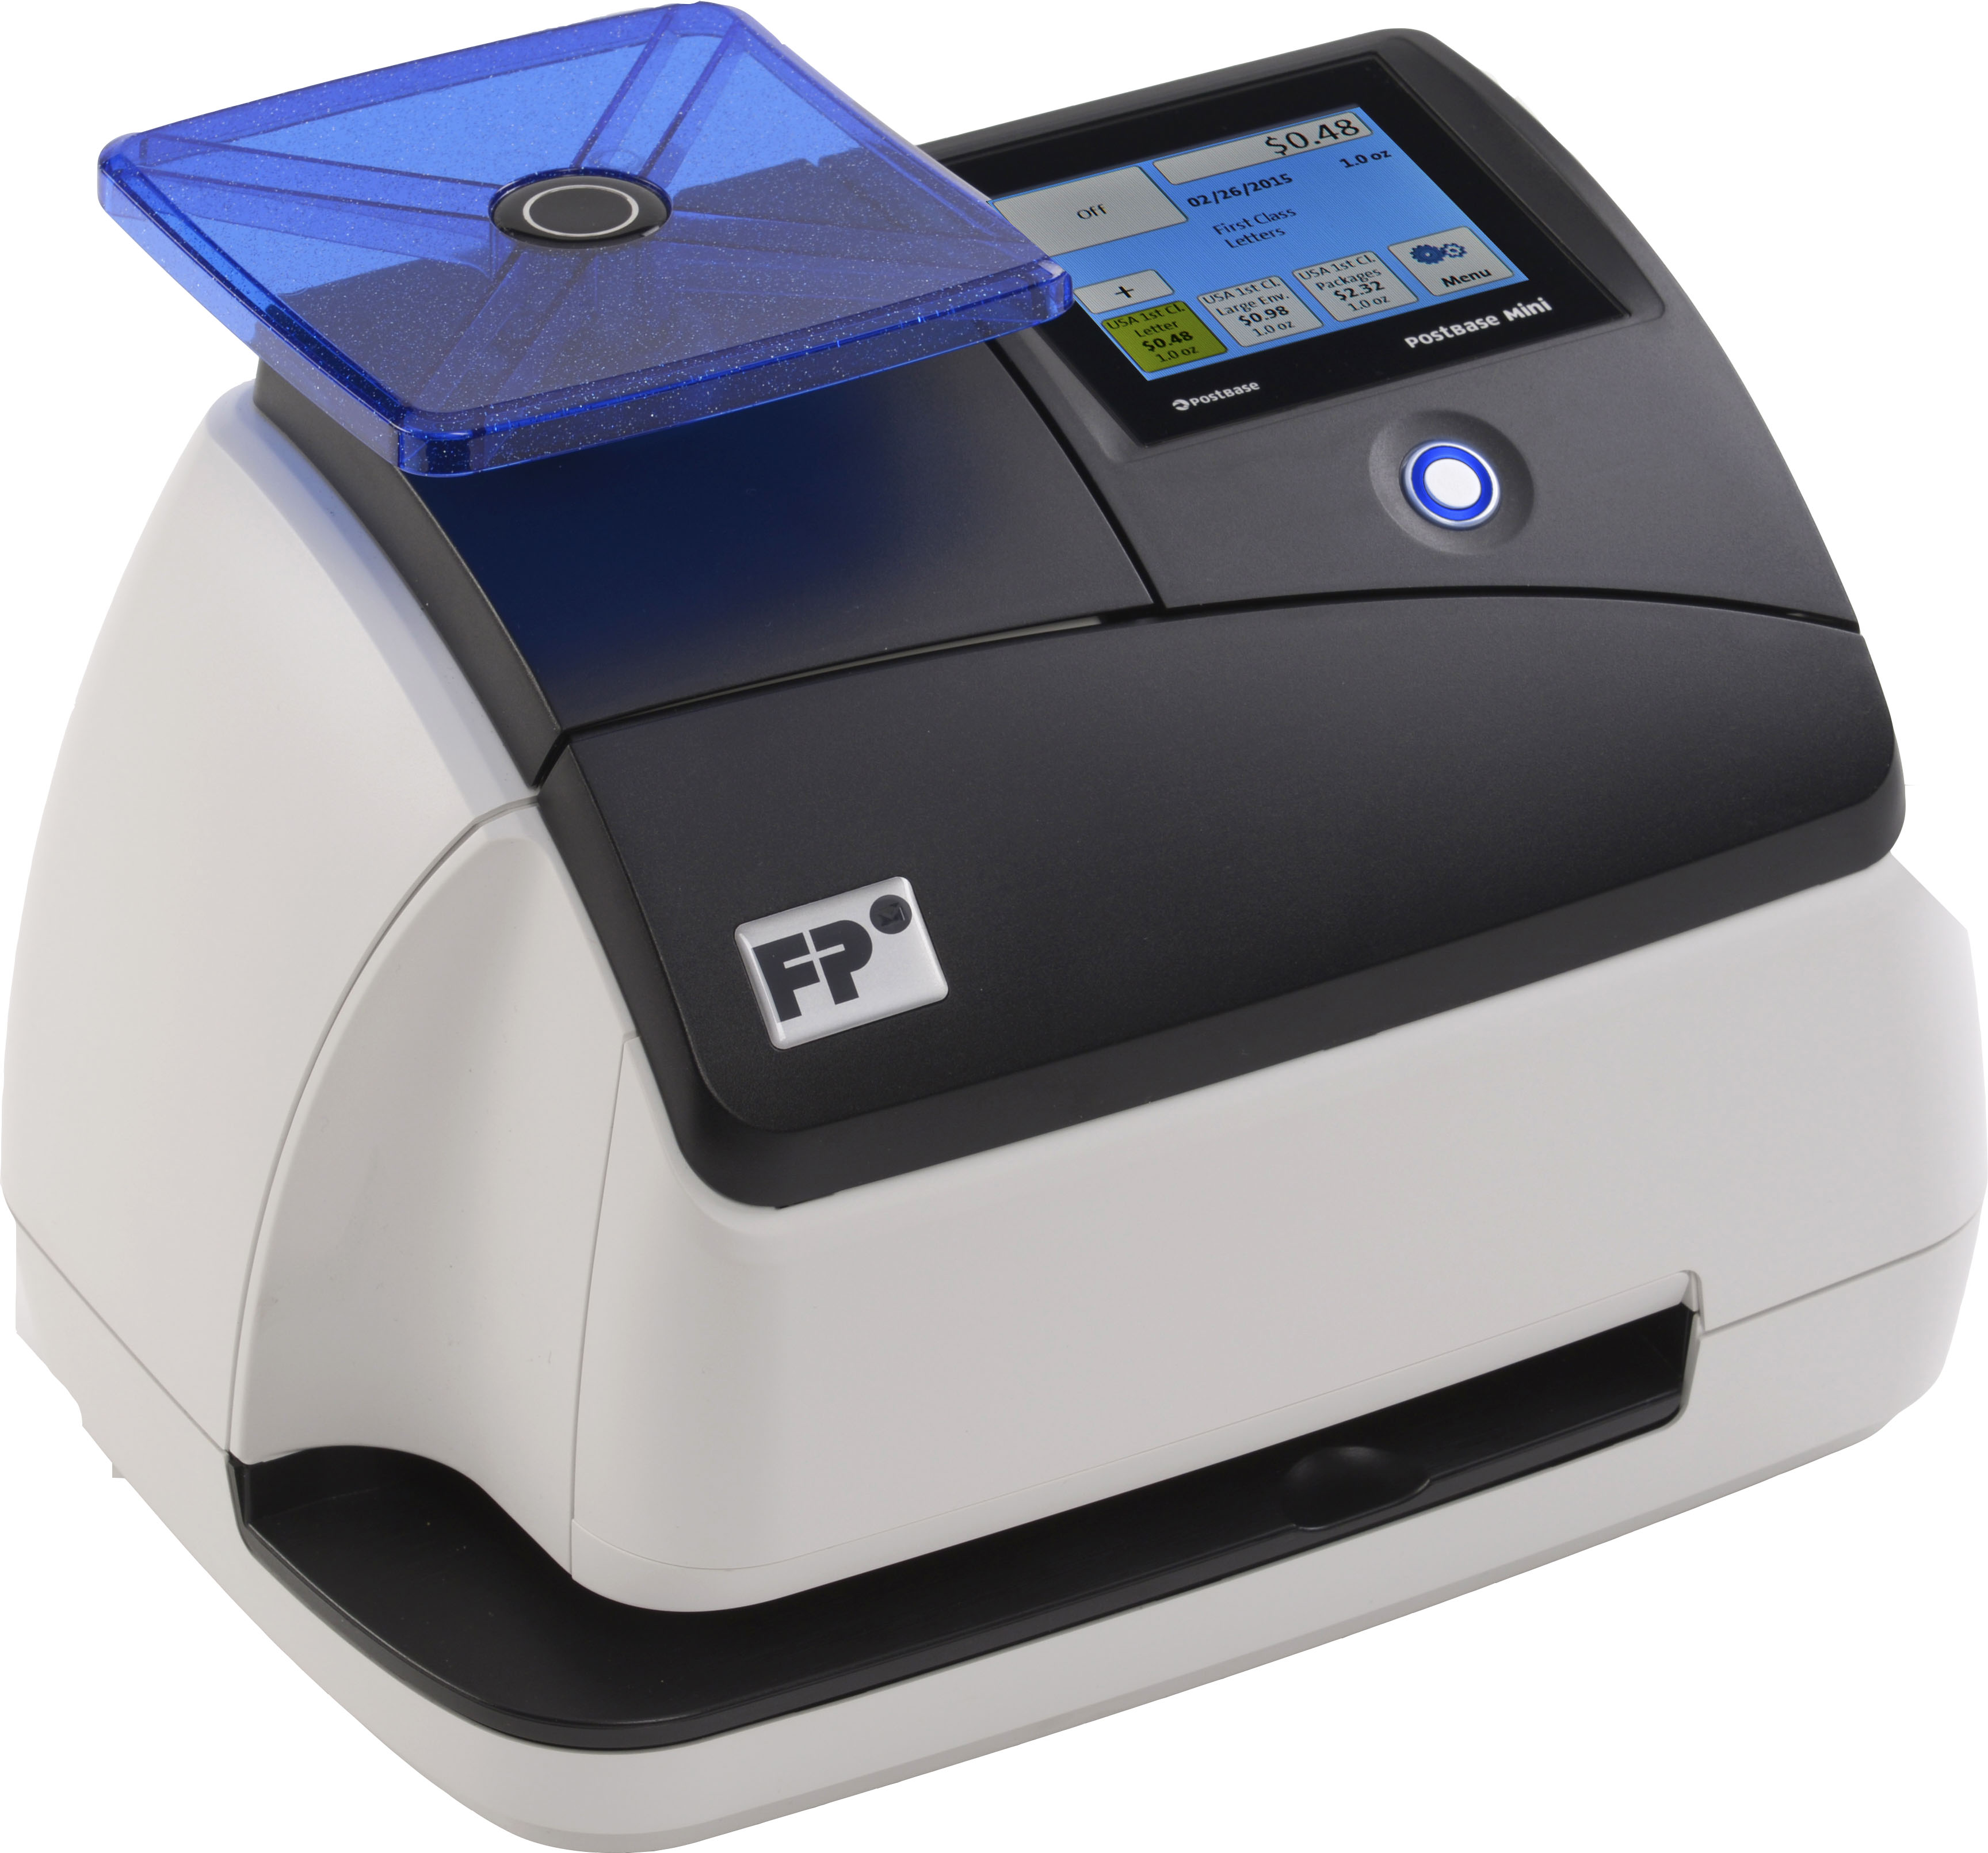 Postbase Mini Postage Meter Key Business Solutions